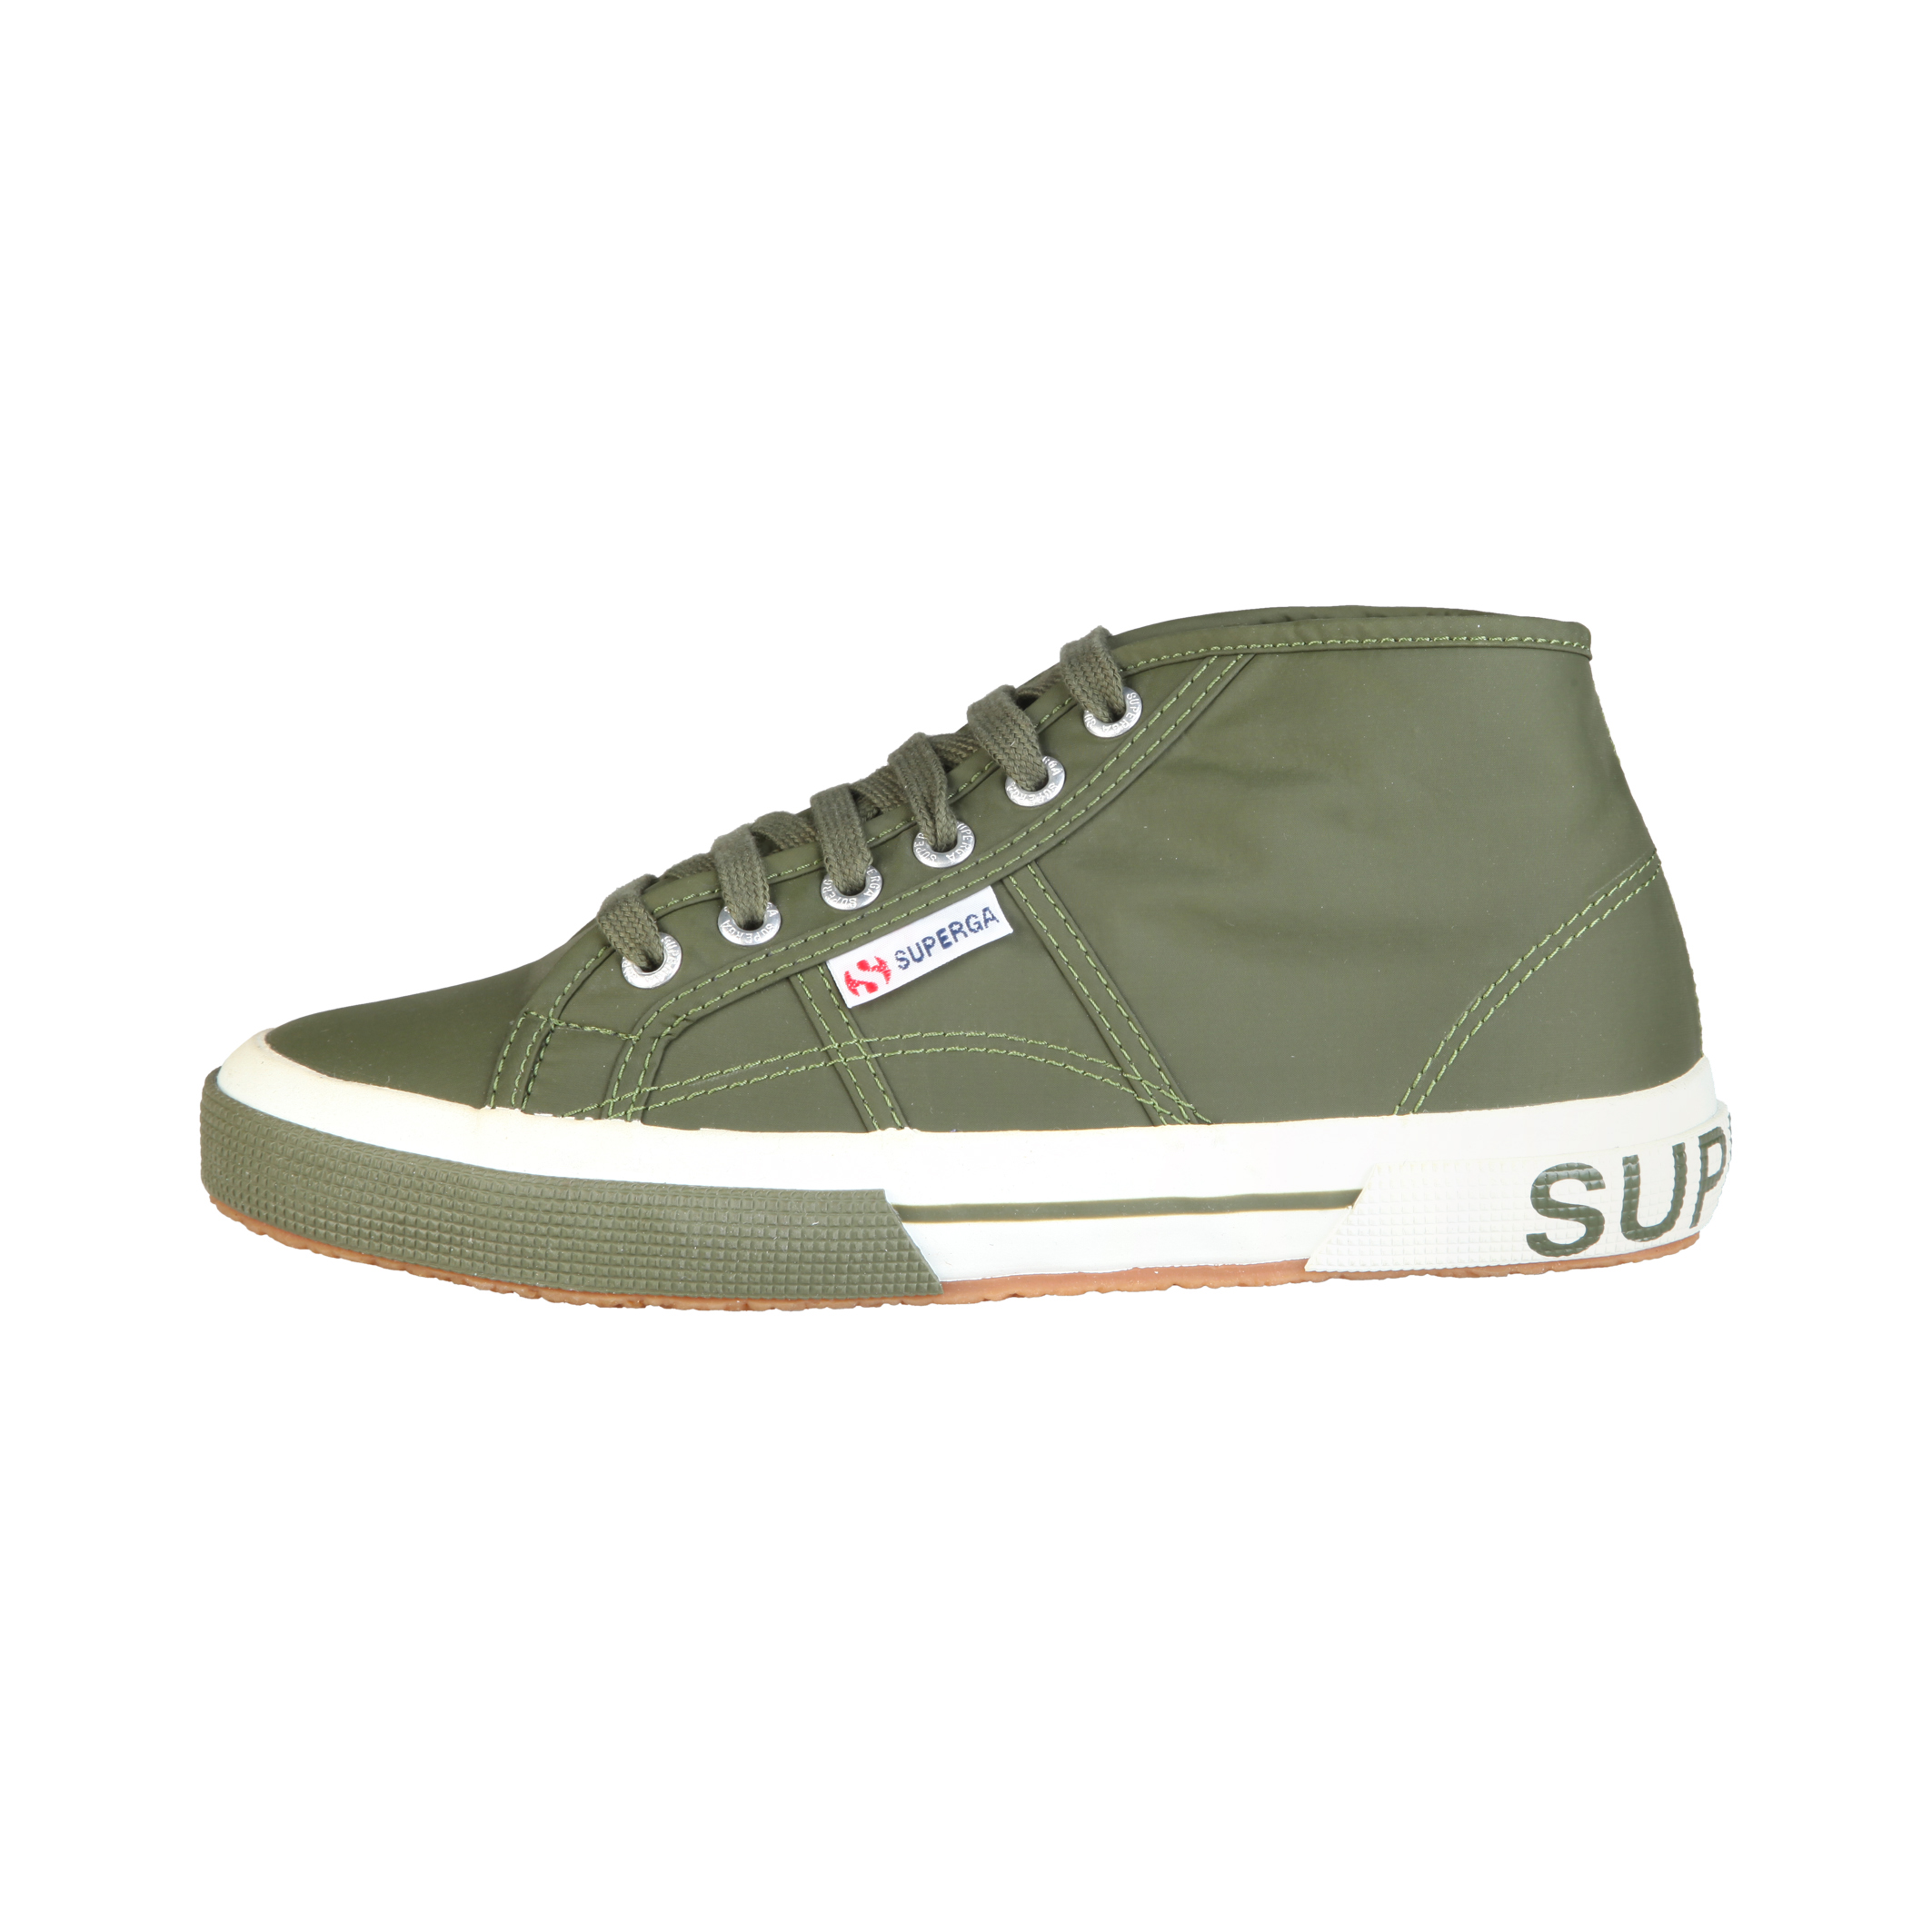 Chaussures   Superga S007A70_2754 green